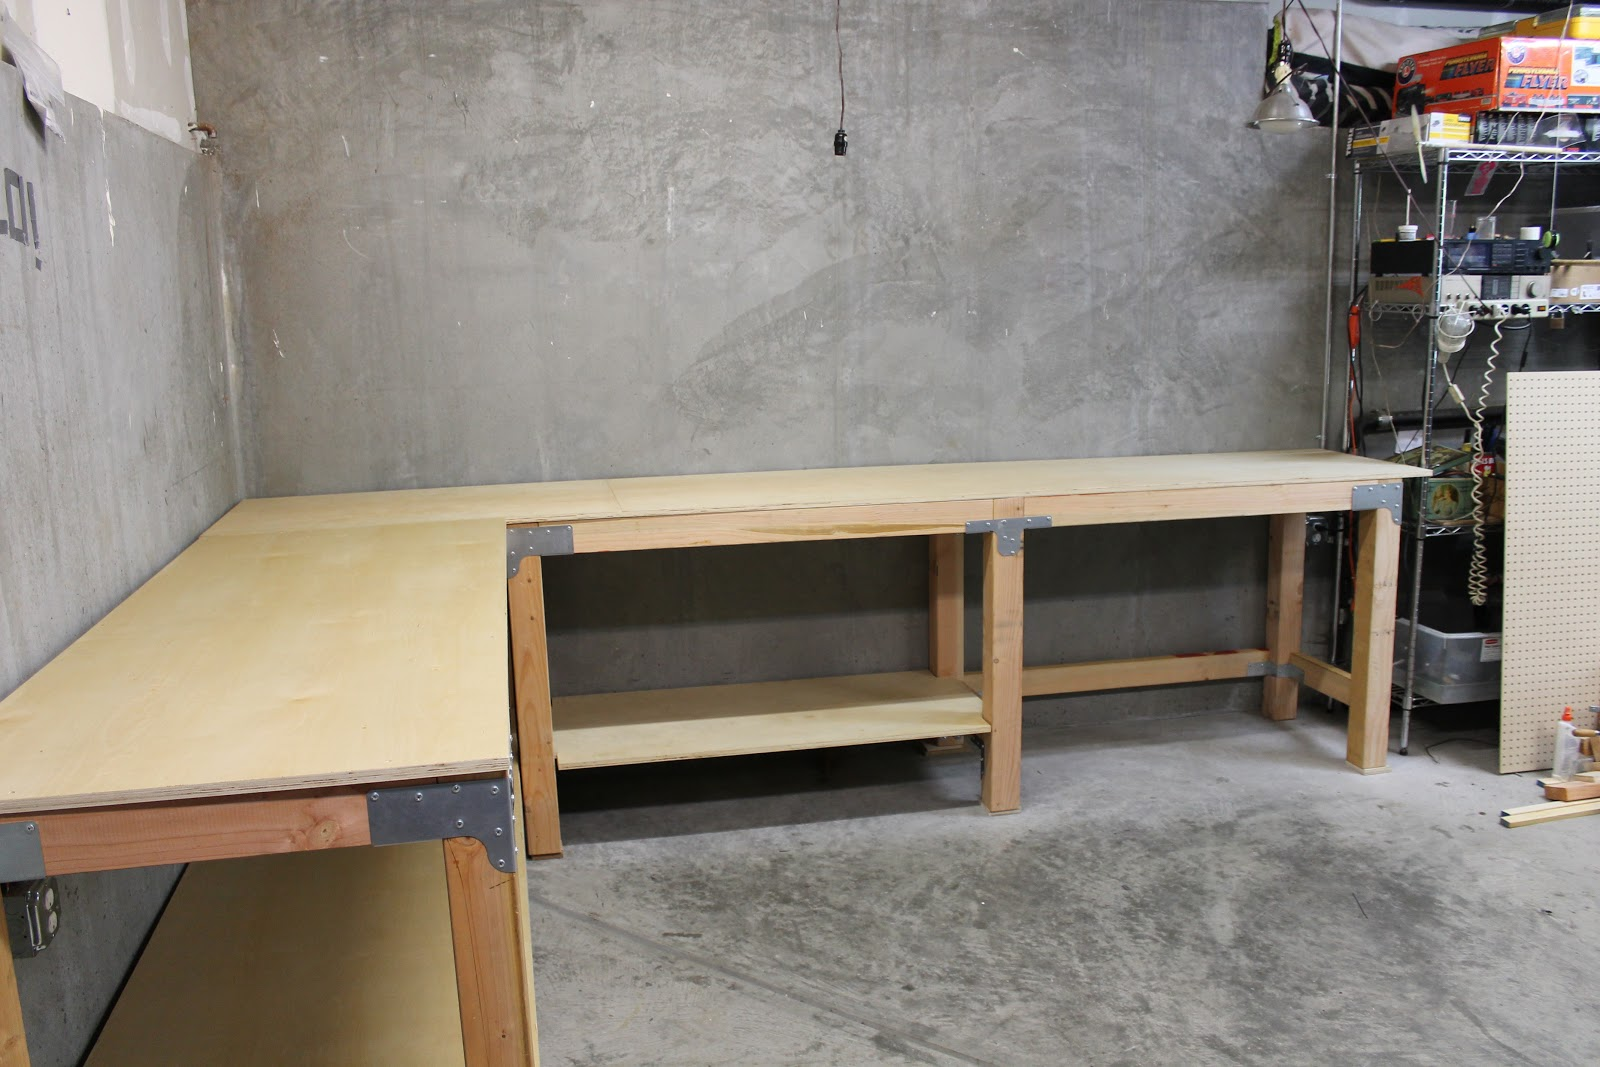 Attrayant Finished: The Garage Work Table